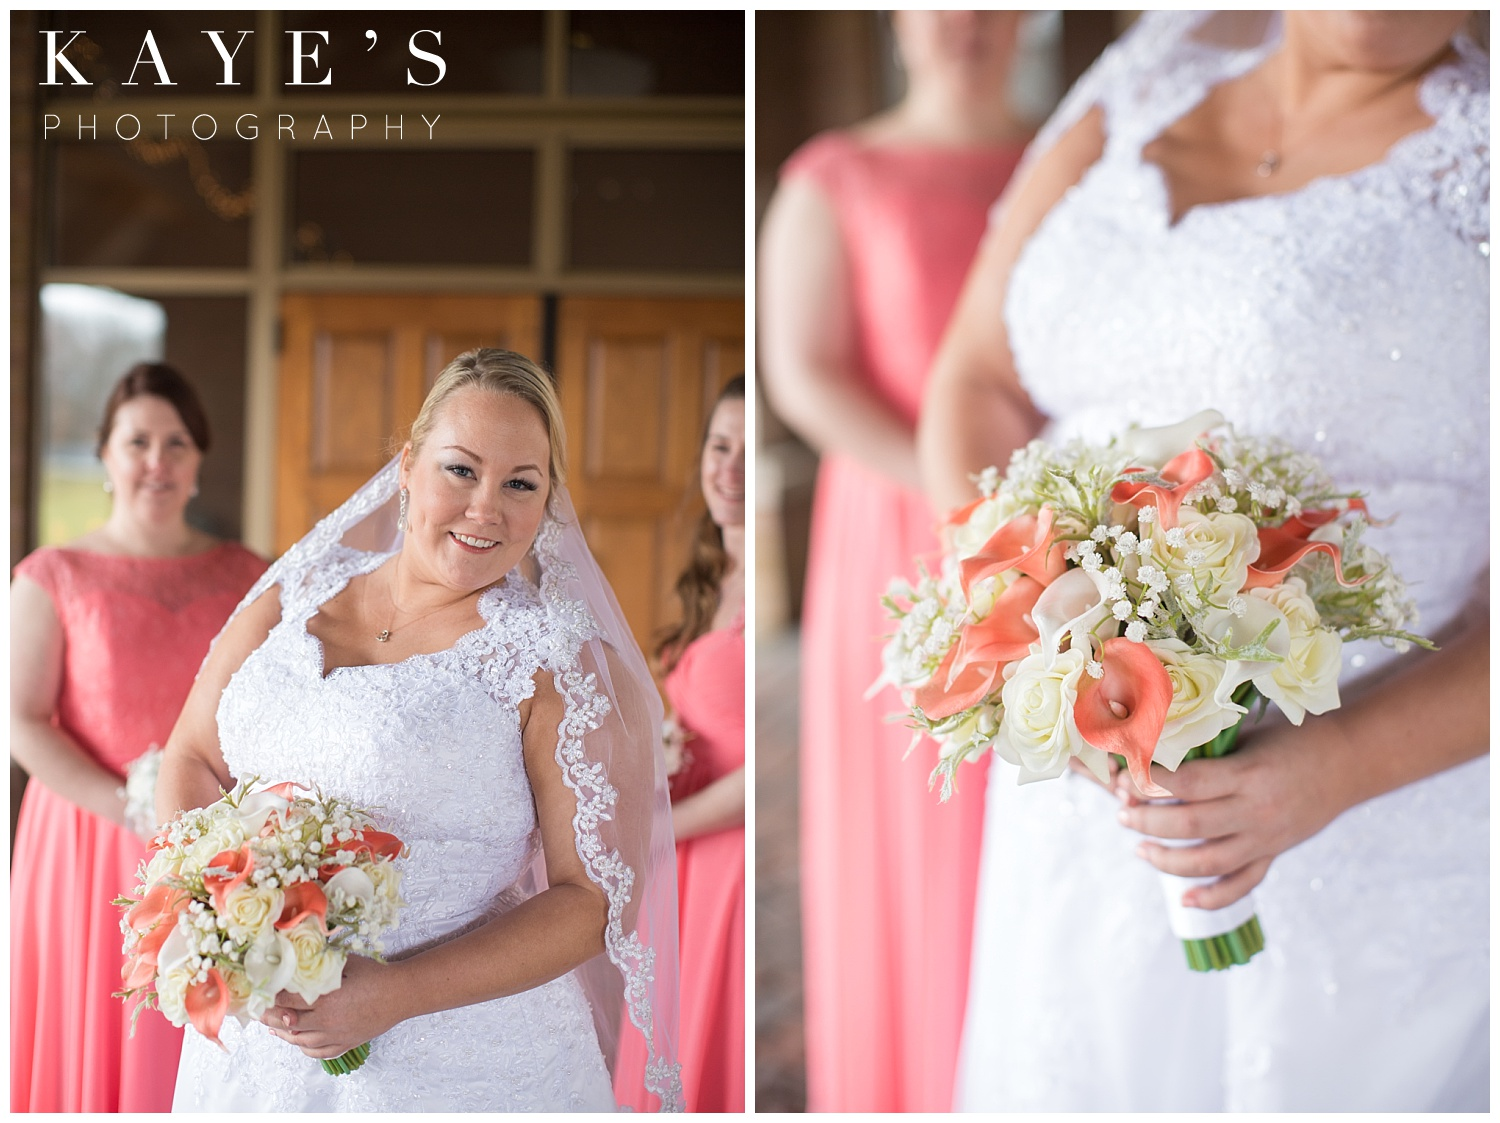 bride details during wedding photos by kaye's photography